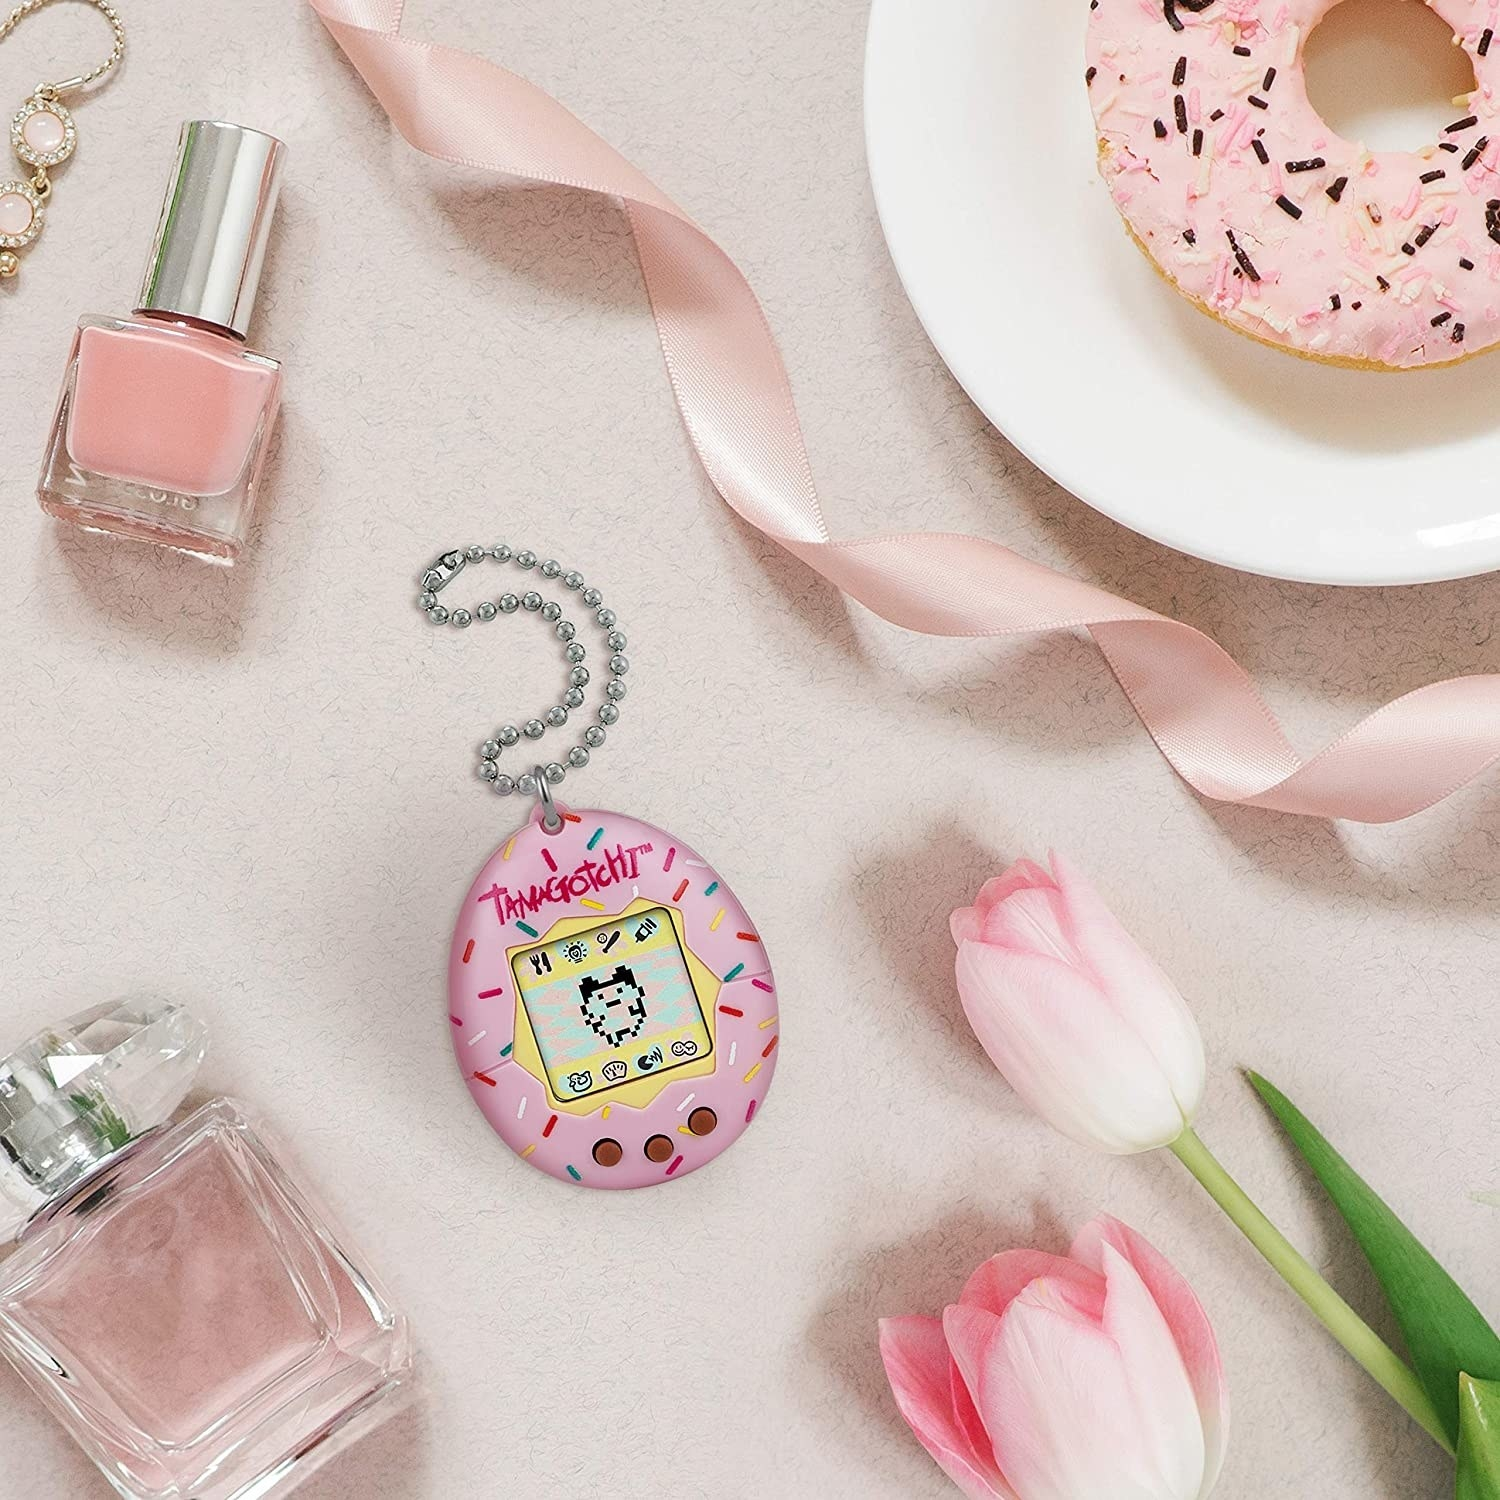 the tamagotchi surrounded by flowers, nail polish, perfume, and a donut